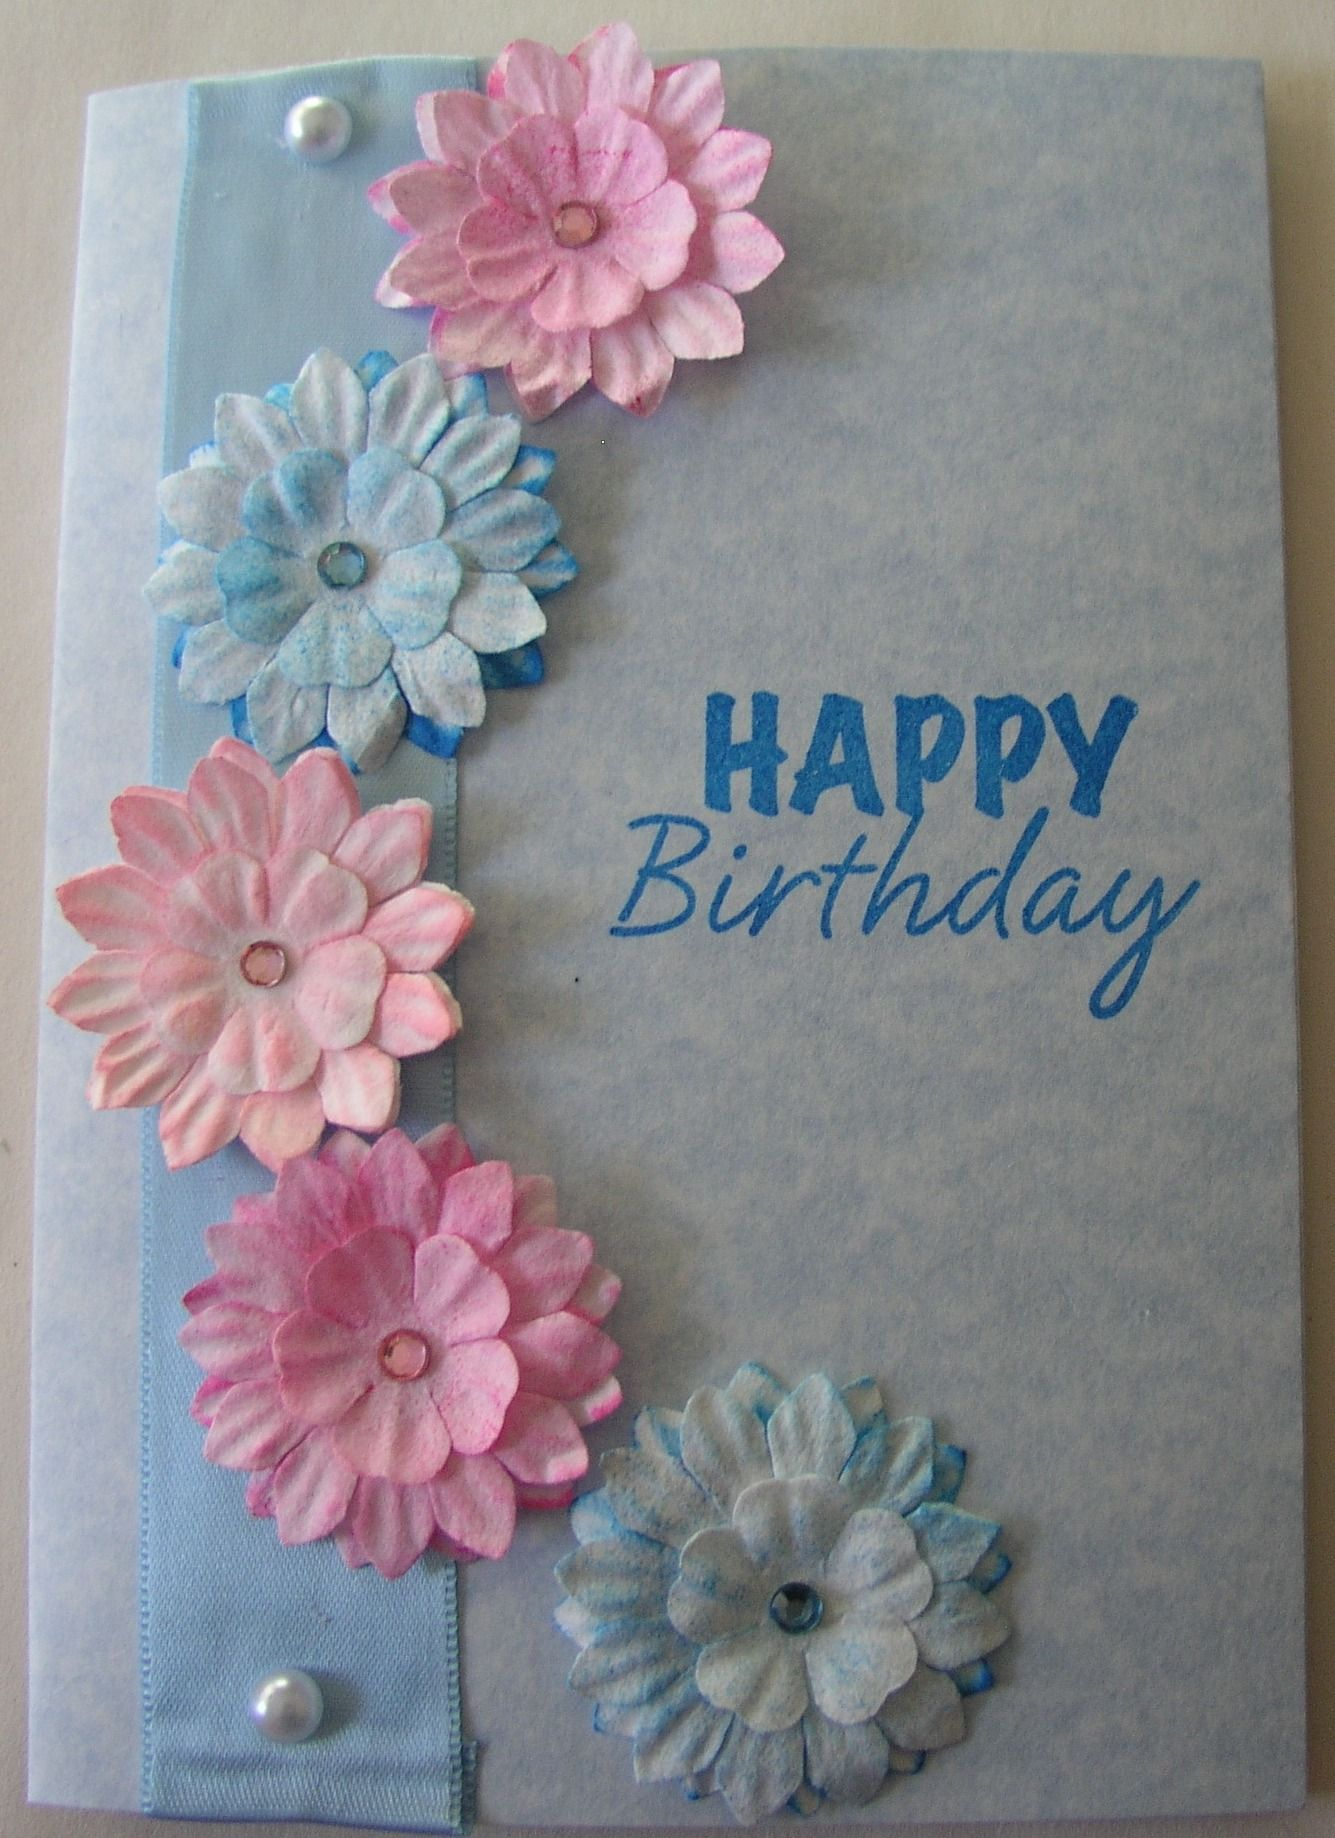 Homemade cards making your own greeting cards can be such a homemade cards making your own greeting cards can be such a rewarding hobby it kristyandbryce Images